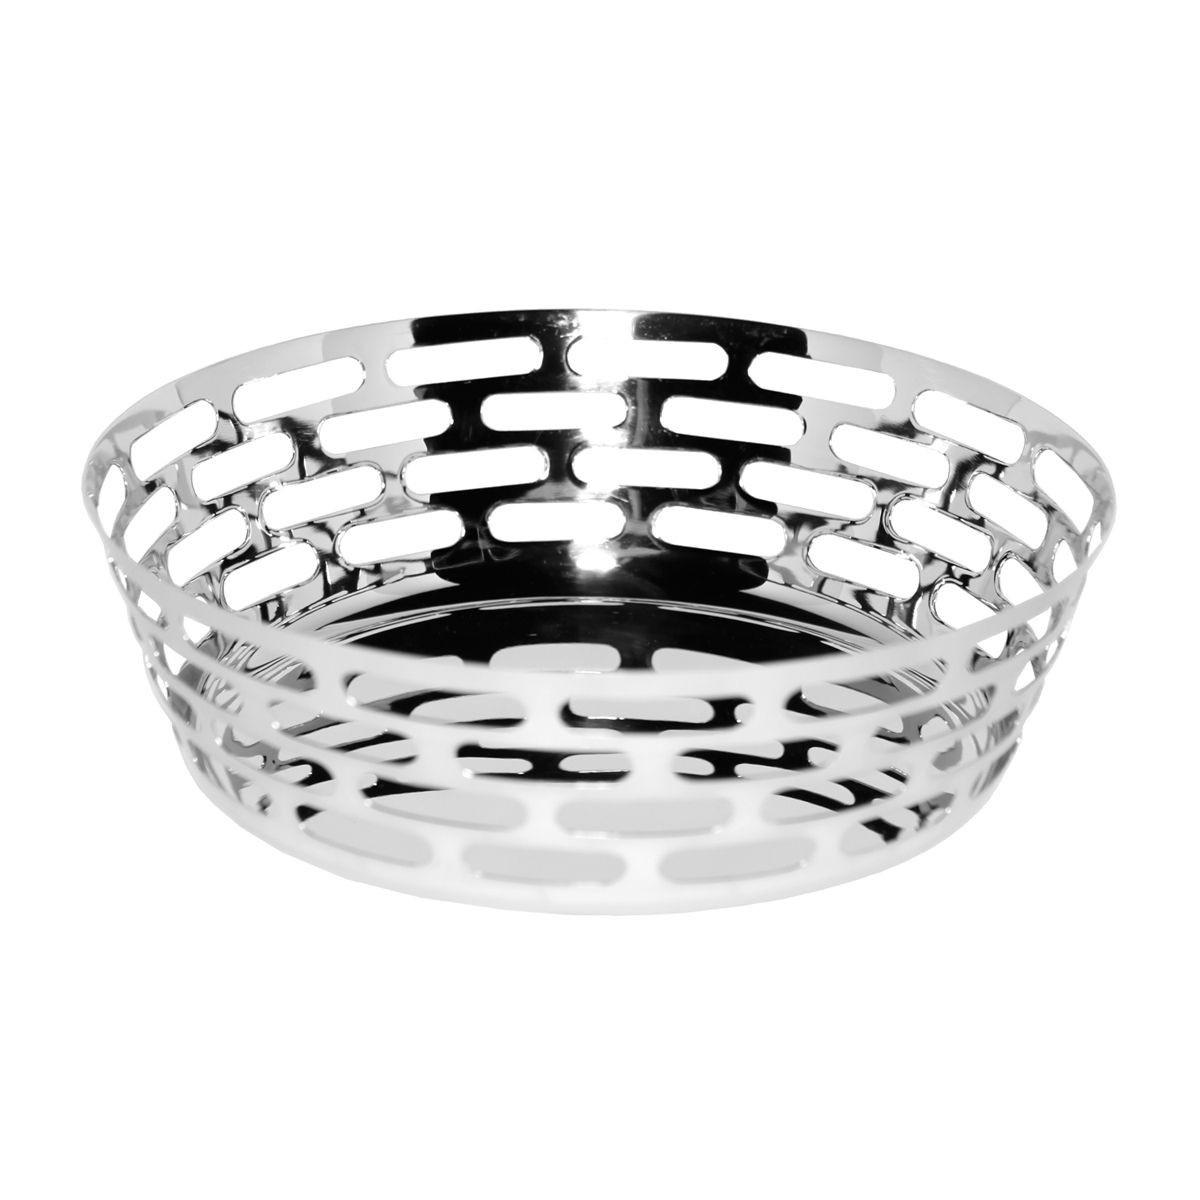 Service Ideas SM-63 SteelForme Round Fruit Bowl, 12""